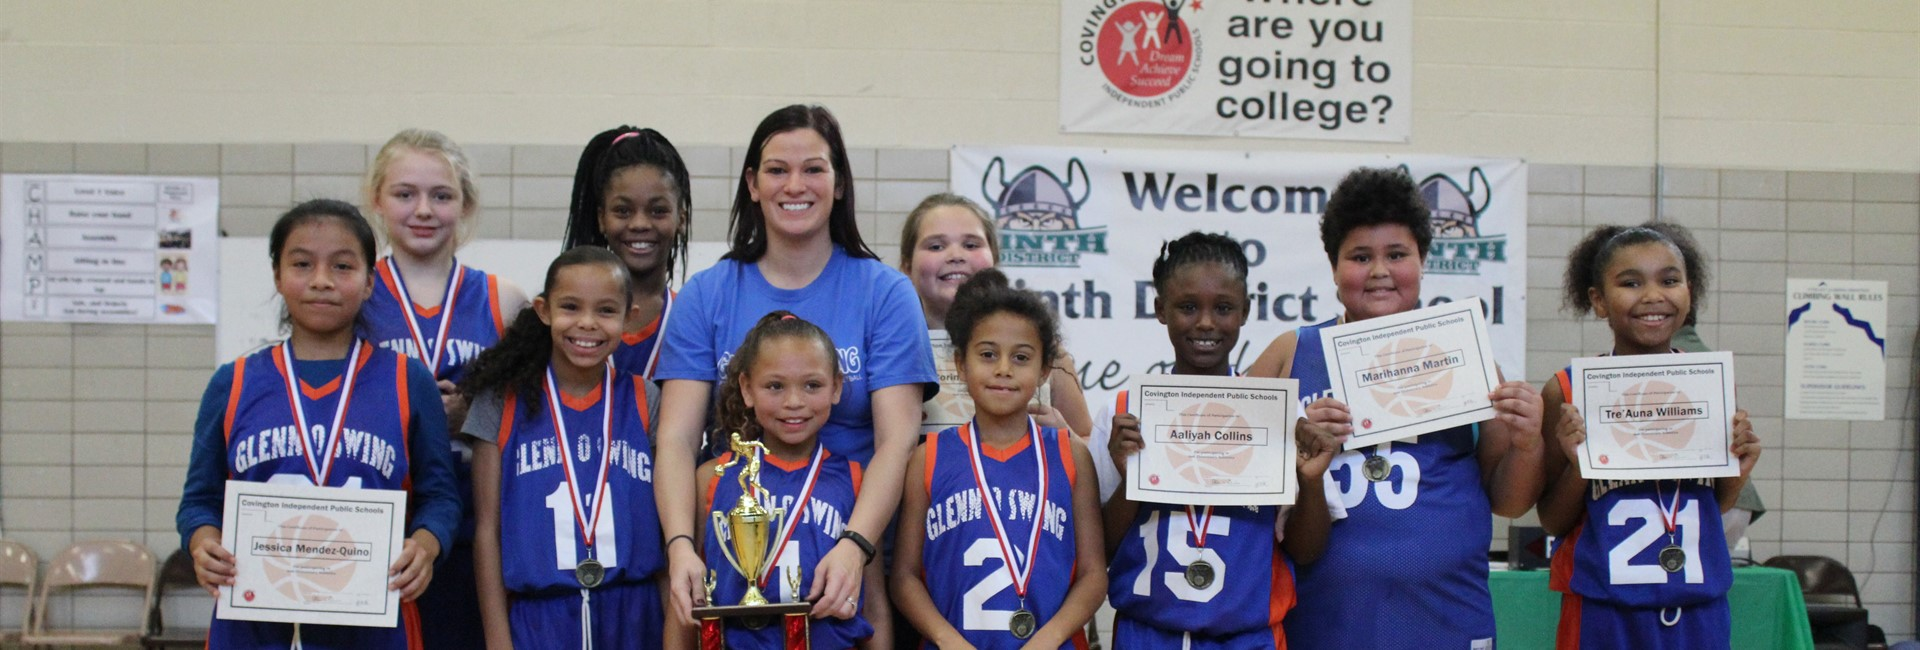 Glenn O. Swing's girls' basketball team wins the championship.